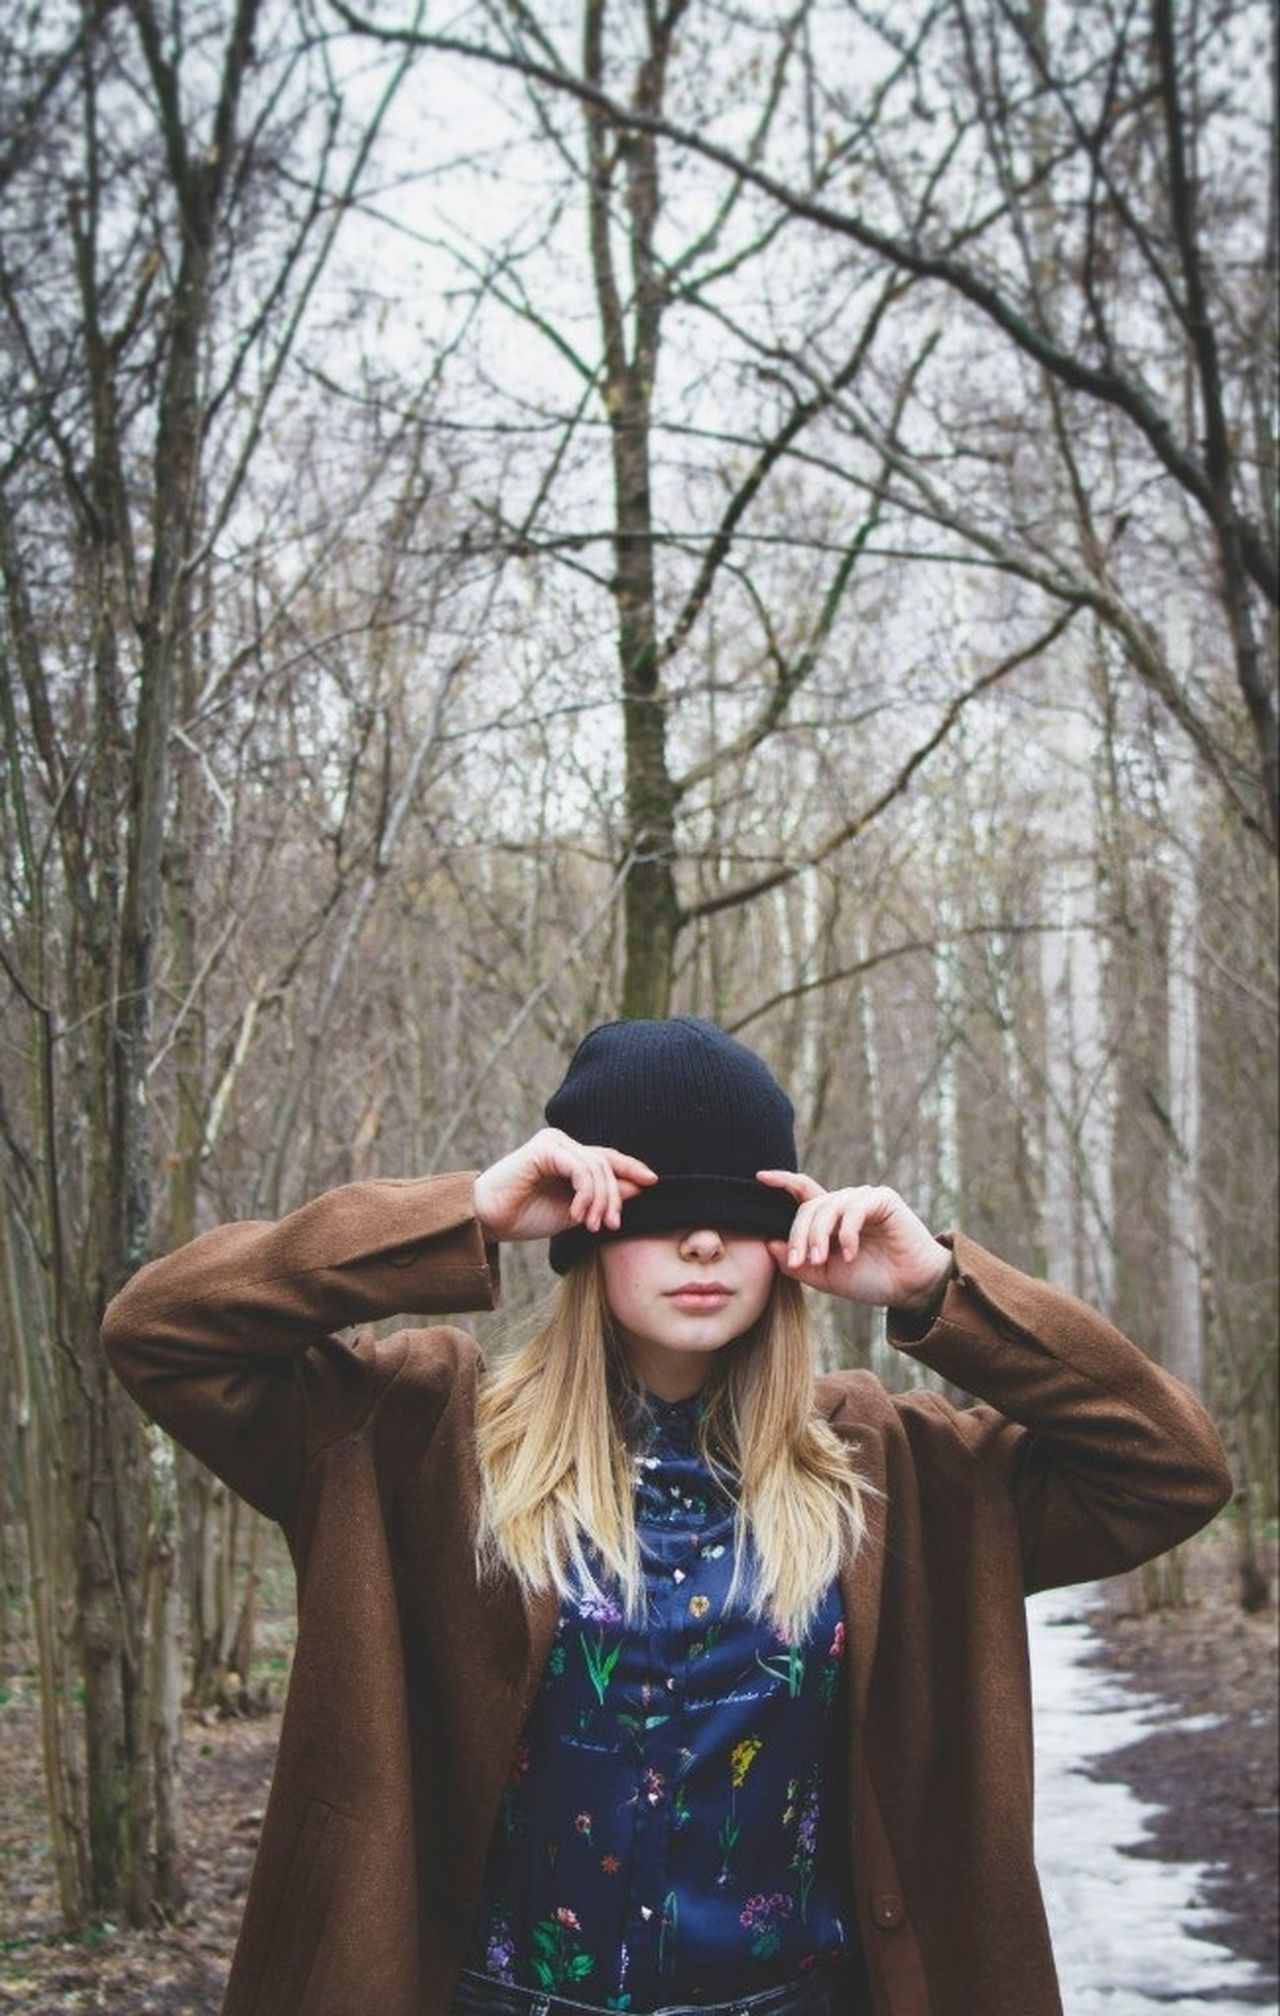 Beautiful young woman with hat over eyes against tree trunks